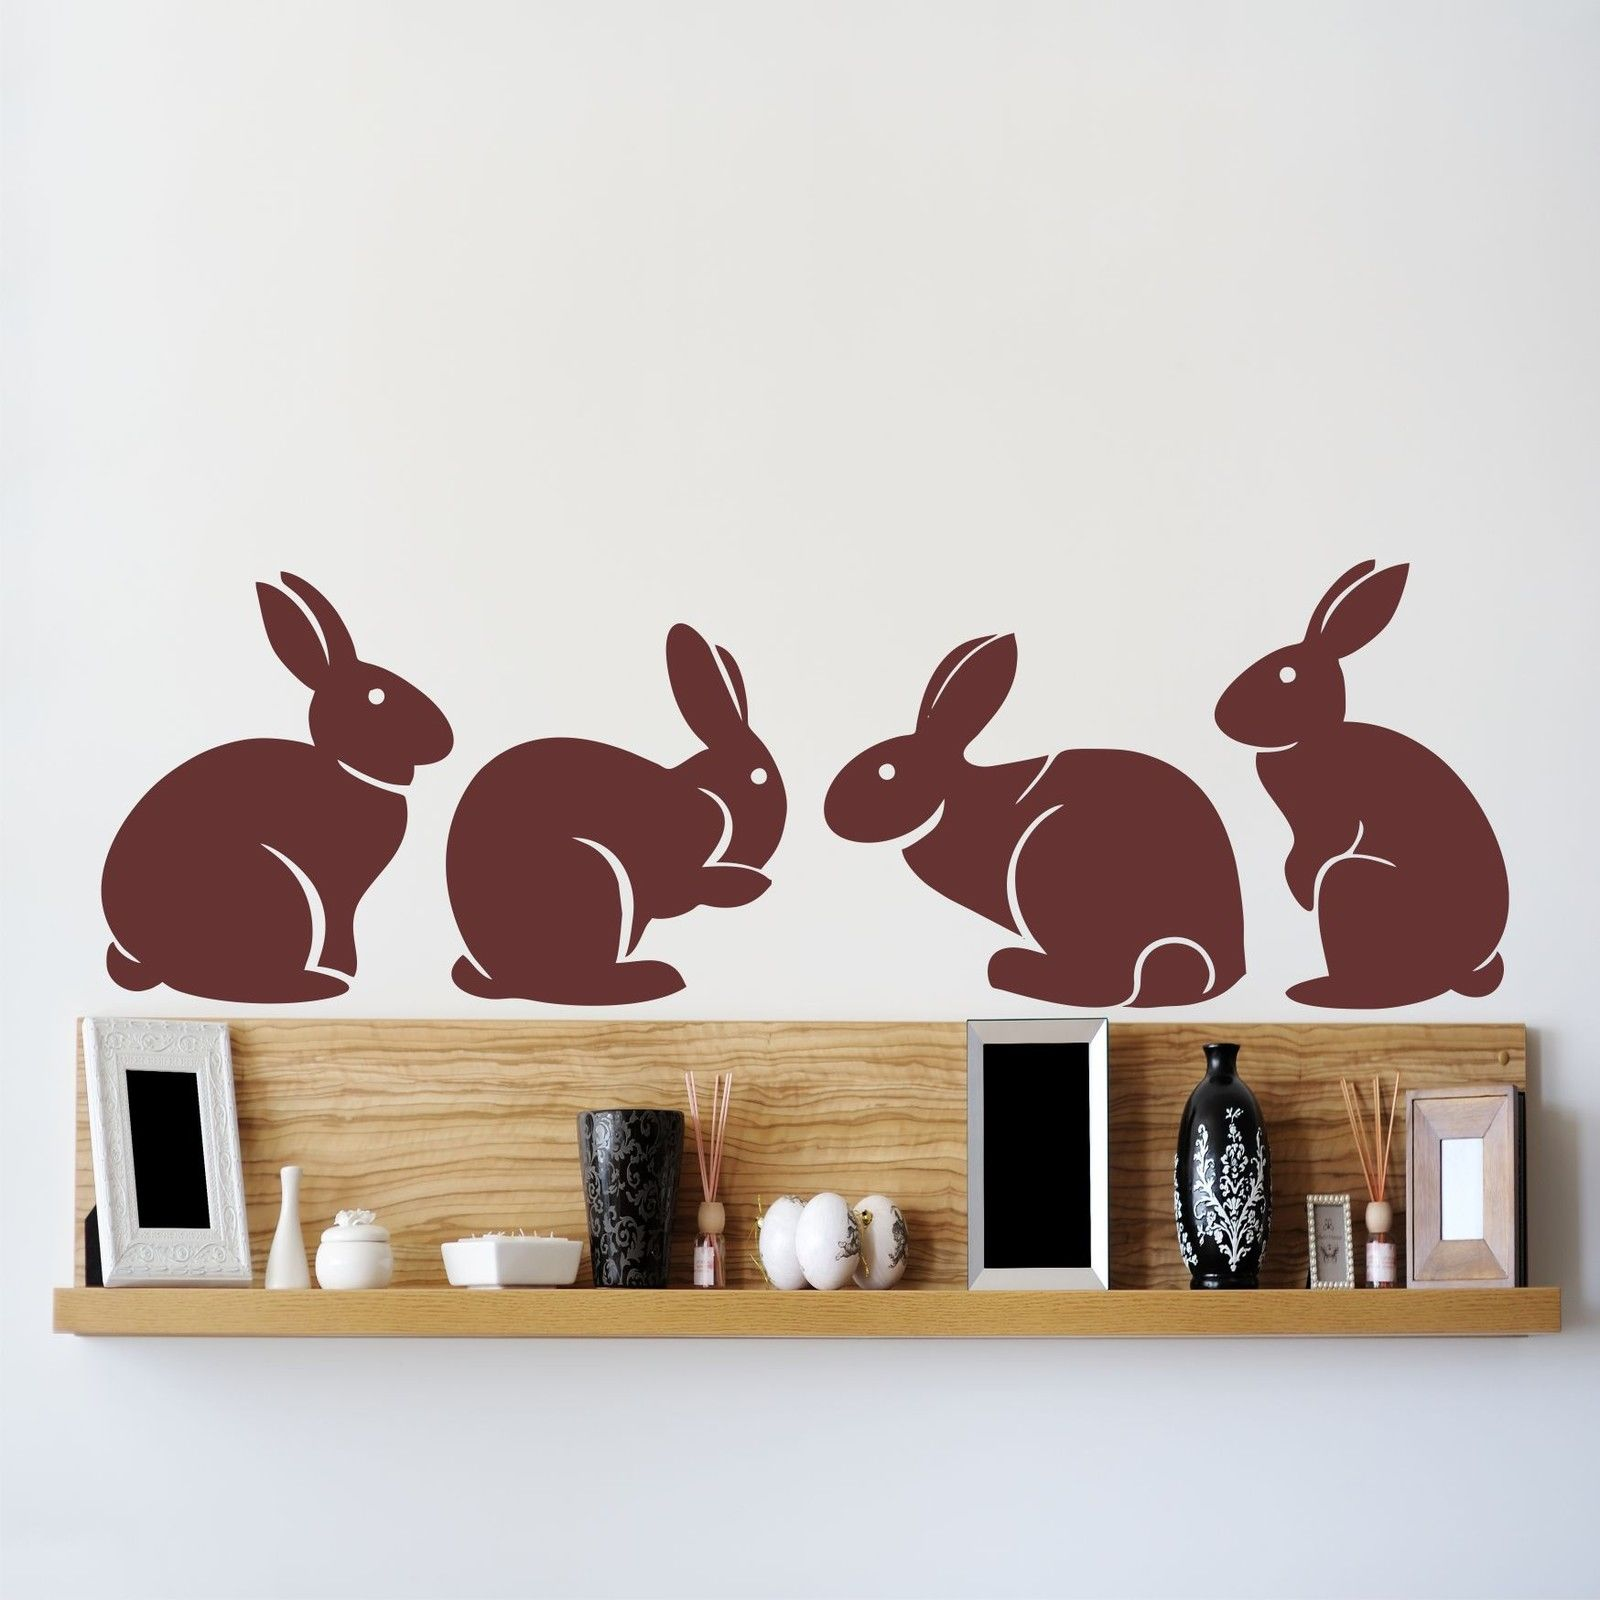 A007 Cute Bunny Rabbits Wall Sticker Baby Nursery Rabbitits Wall - Տնային դեկոր - Լուսանկար 2